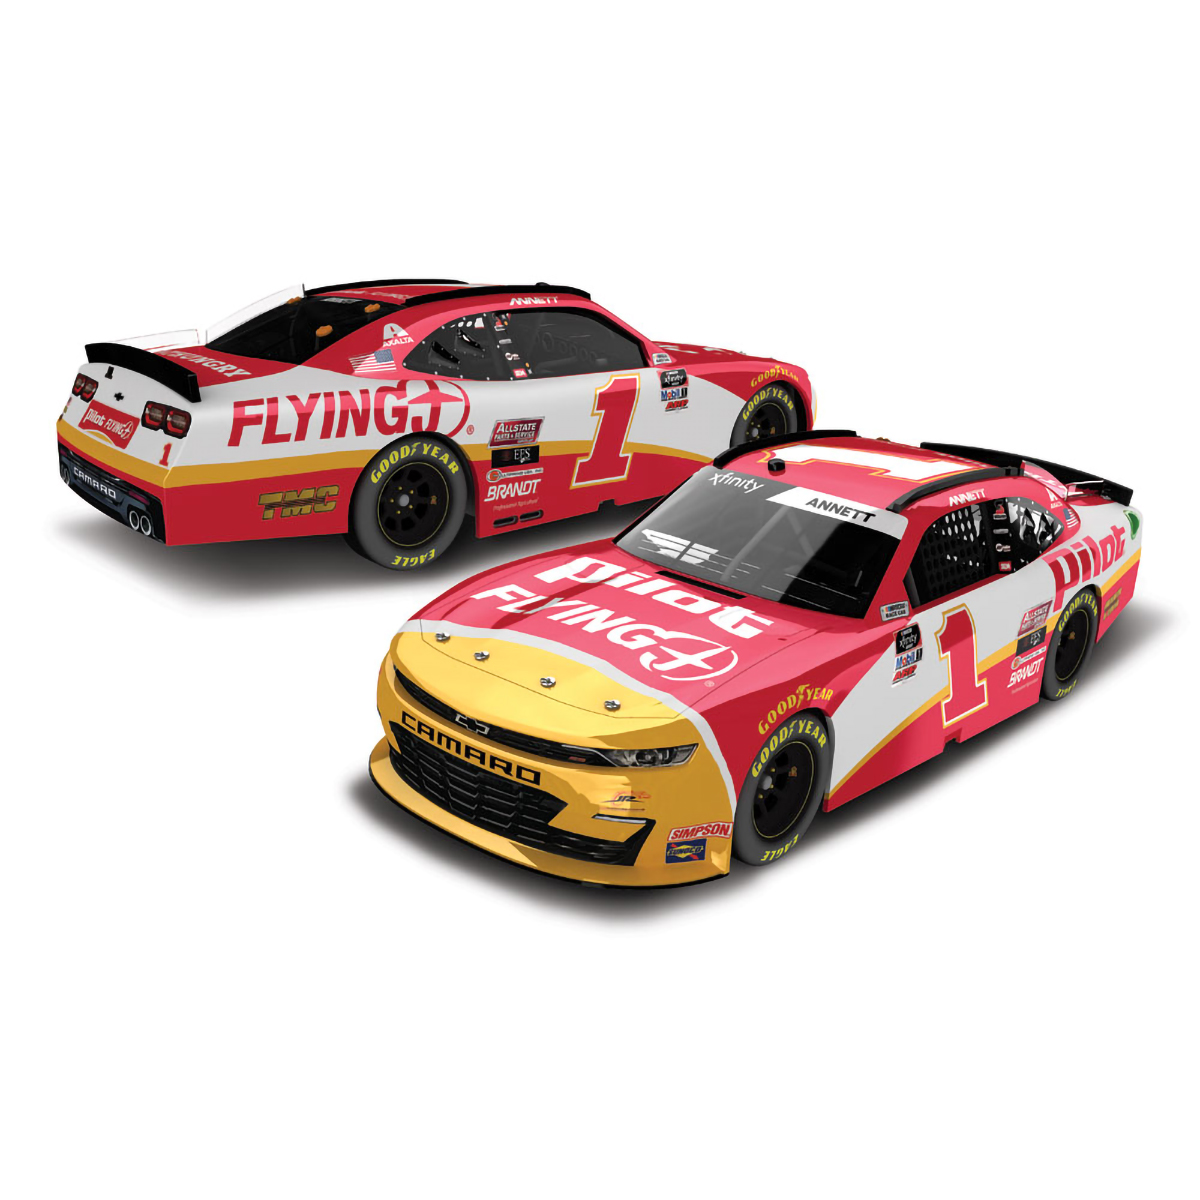 Michael Annett #1 Pilot Flying J 2020 NASCAR Xfinity Series HO: 1:24 Die Cast